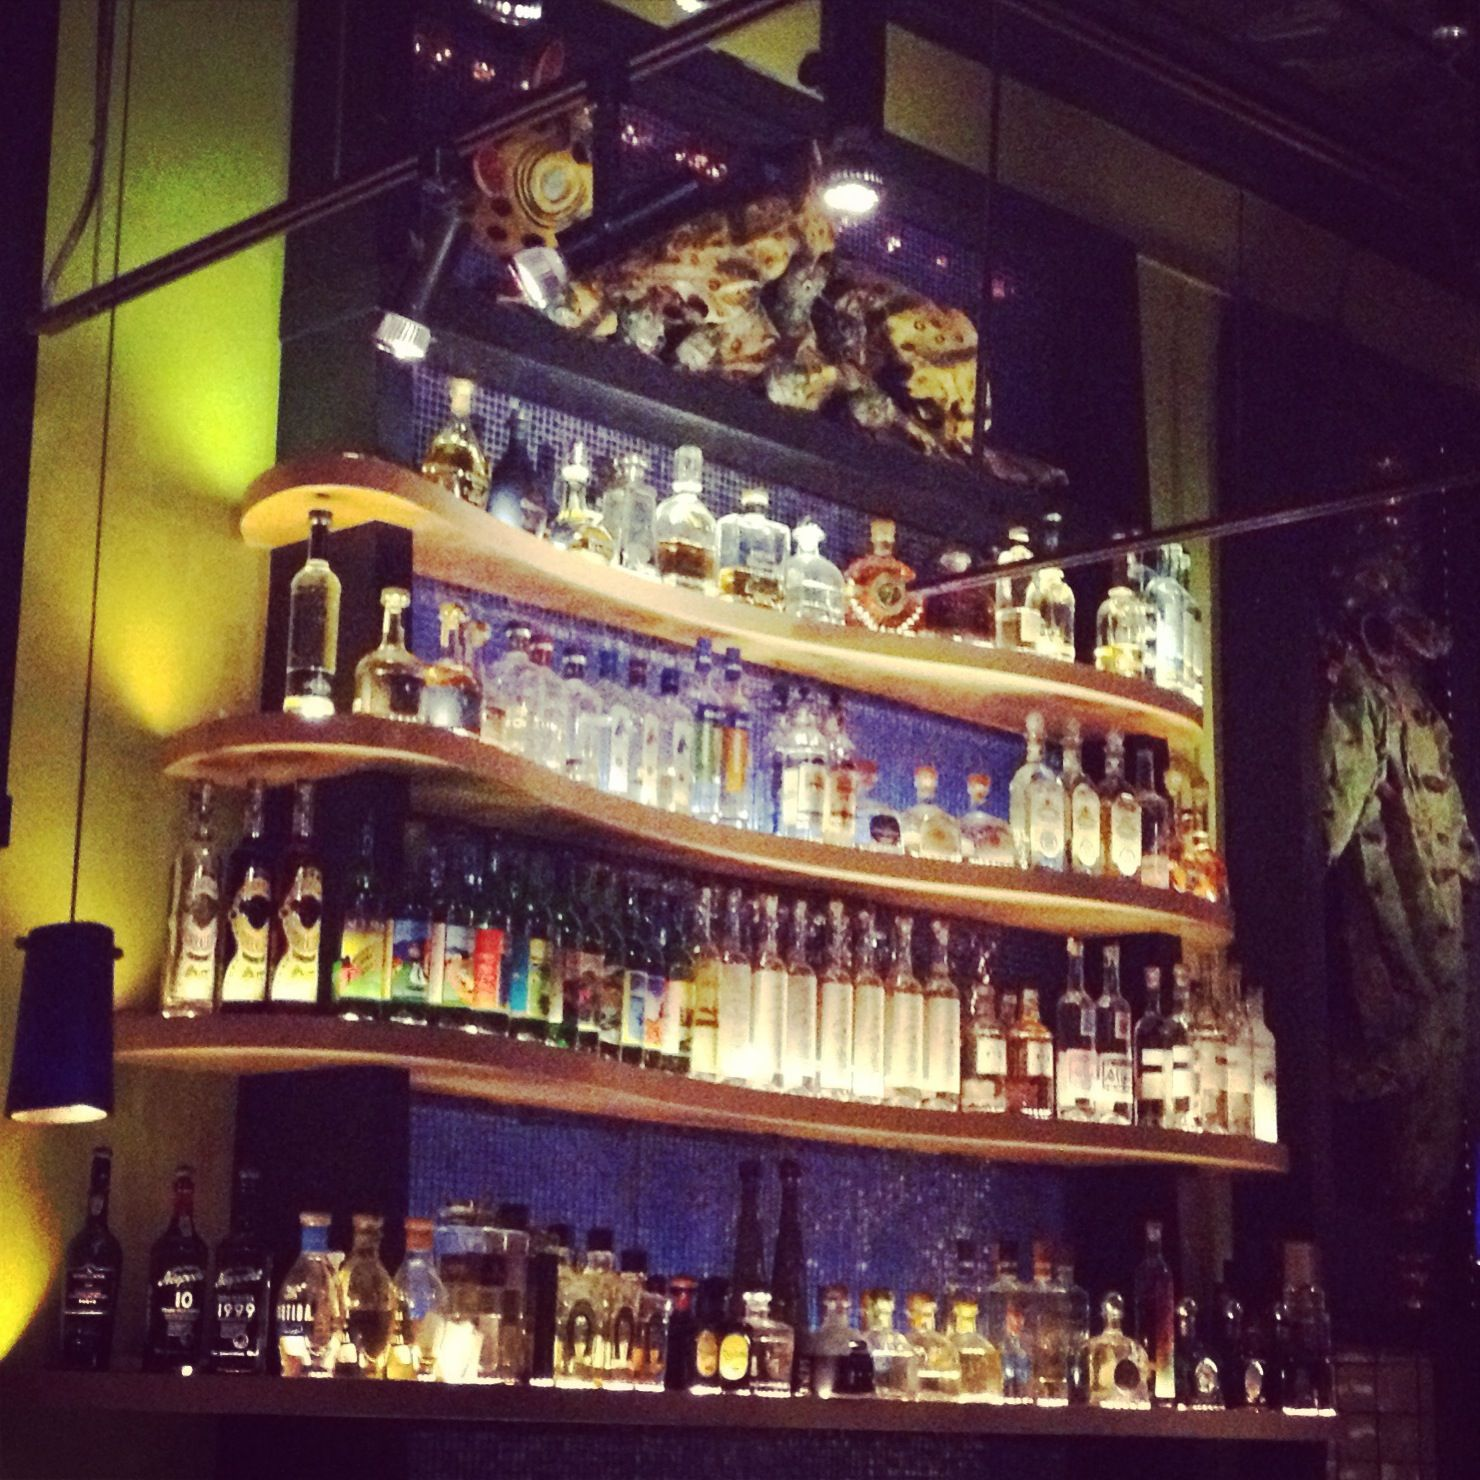 Bar at Frontera Grill in Chicago. The topolo margarita is the best!